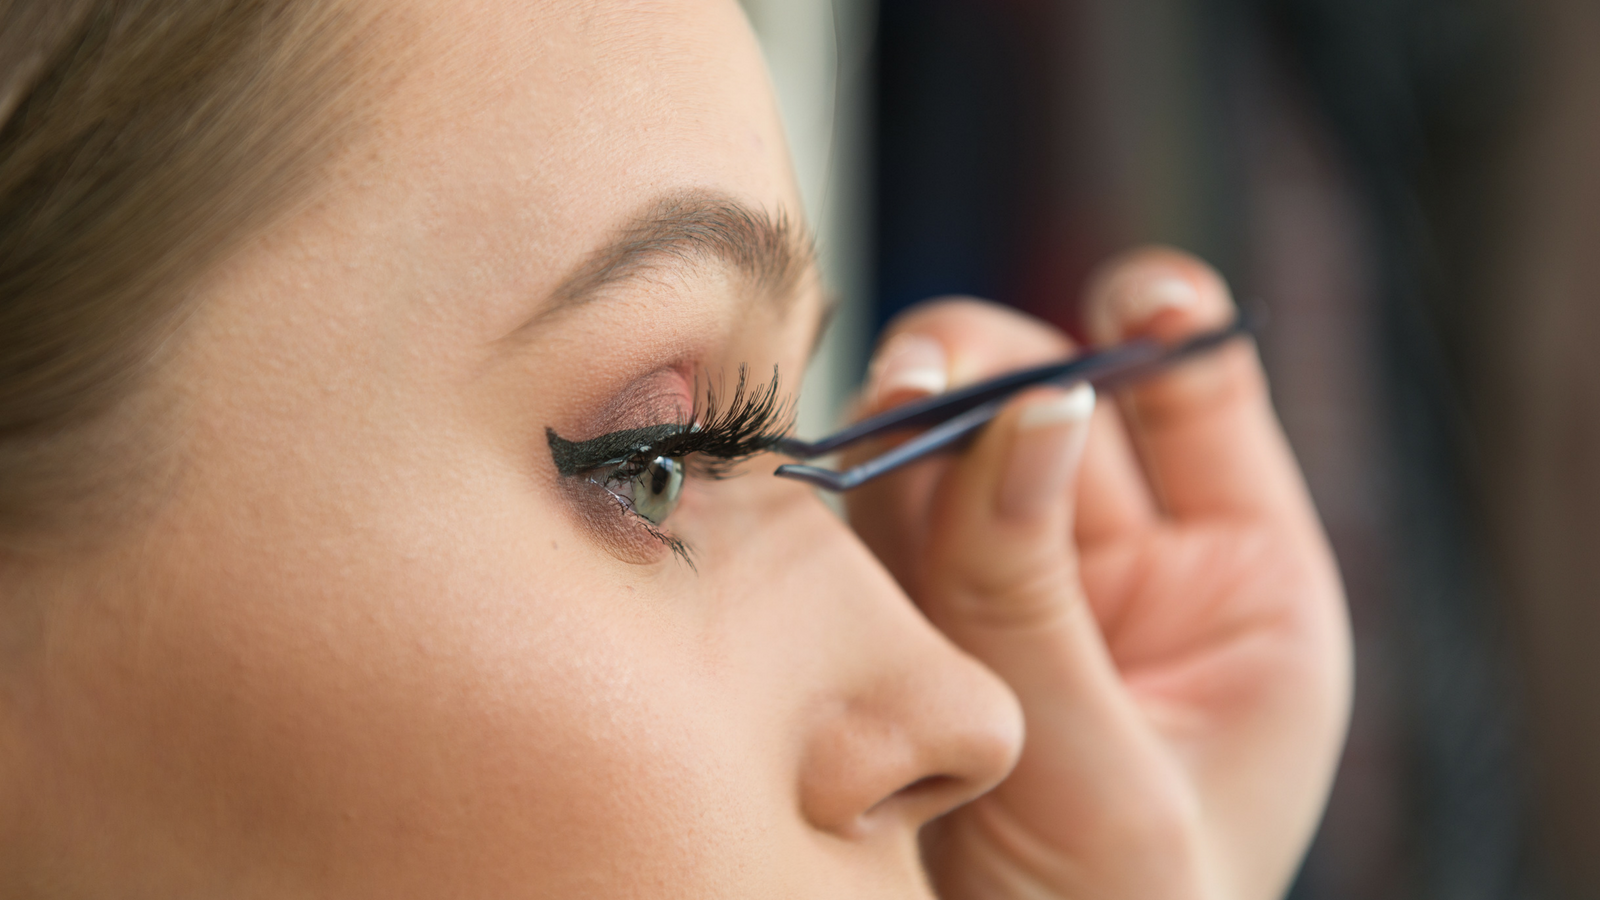 Best false eyelashes 2019: Fake a flutter with the best false